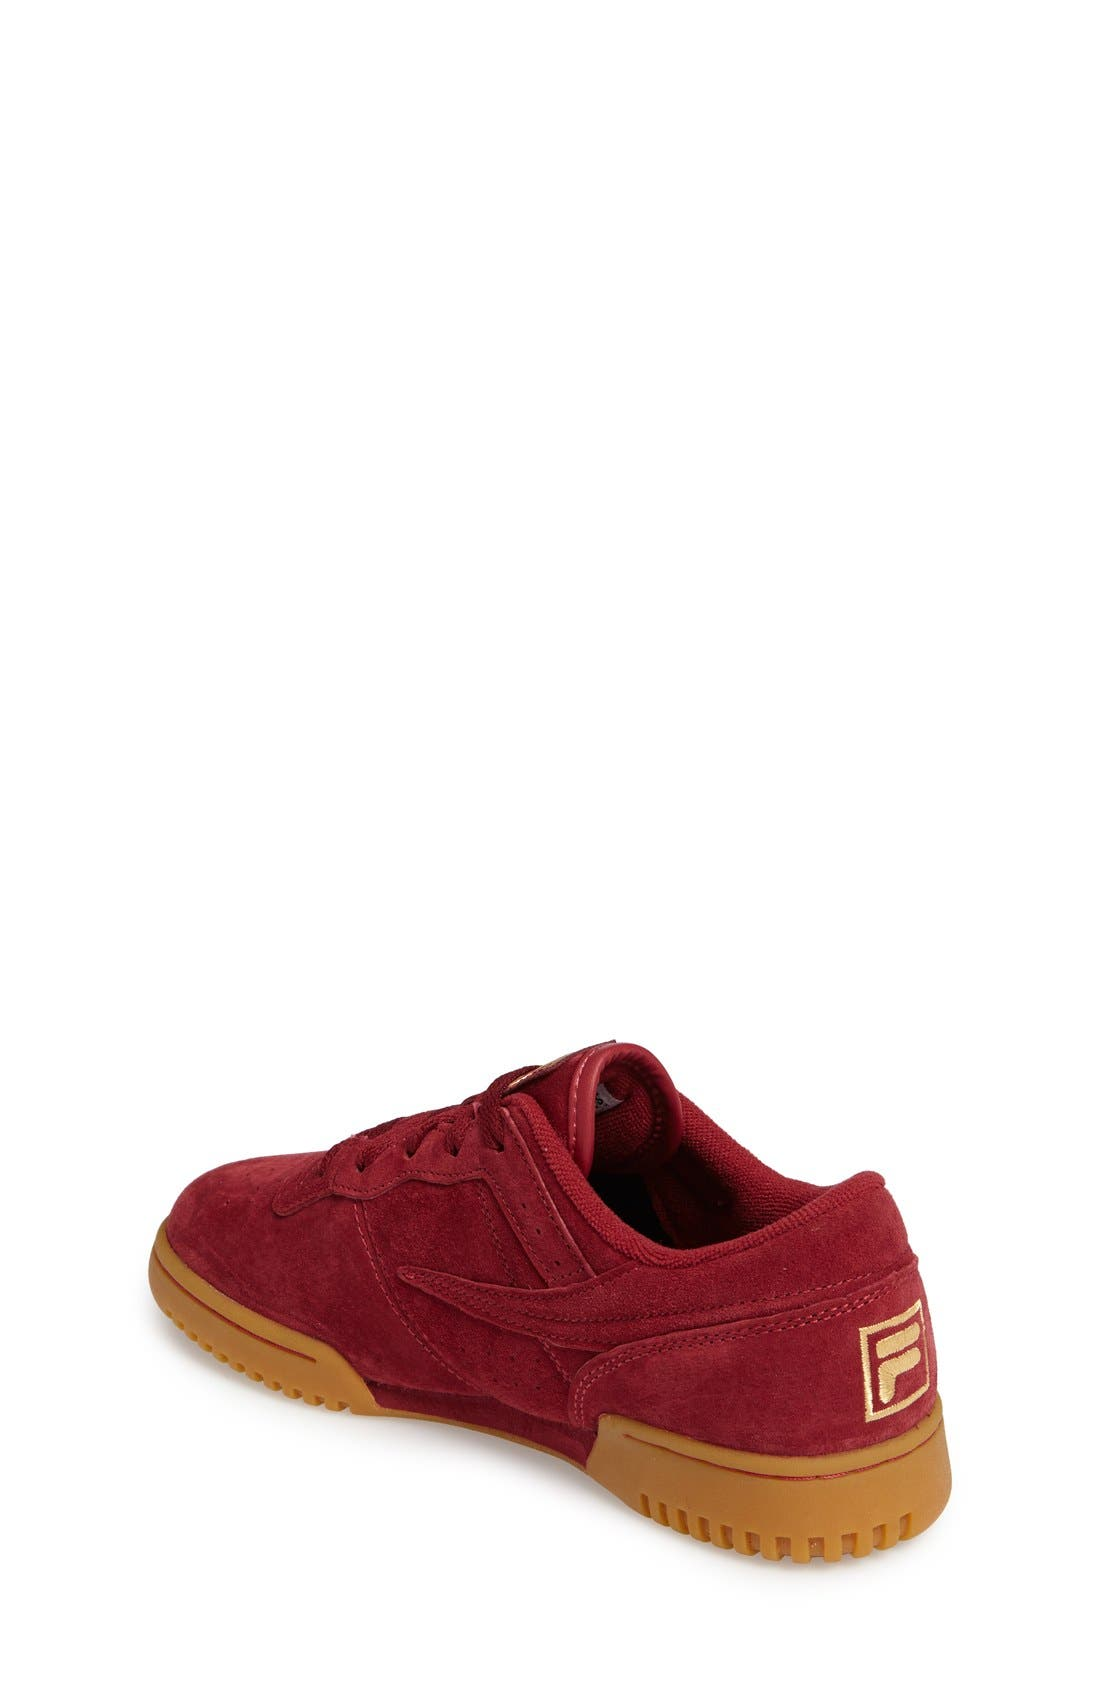 Heritage Sneaker,                             Alternate thumbnail 2, color,                             Biking Red Suede